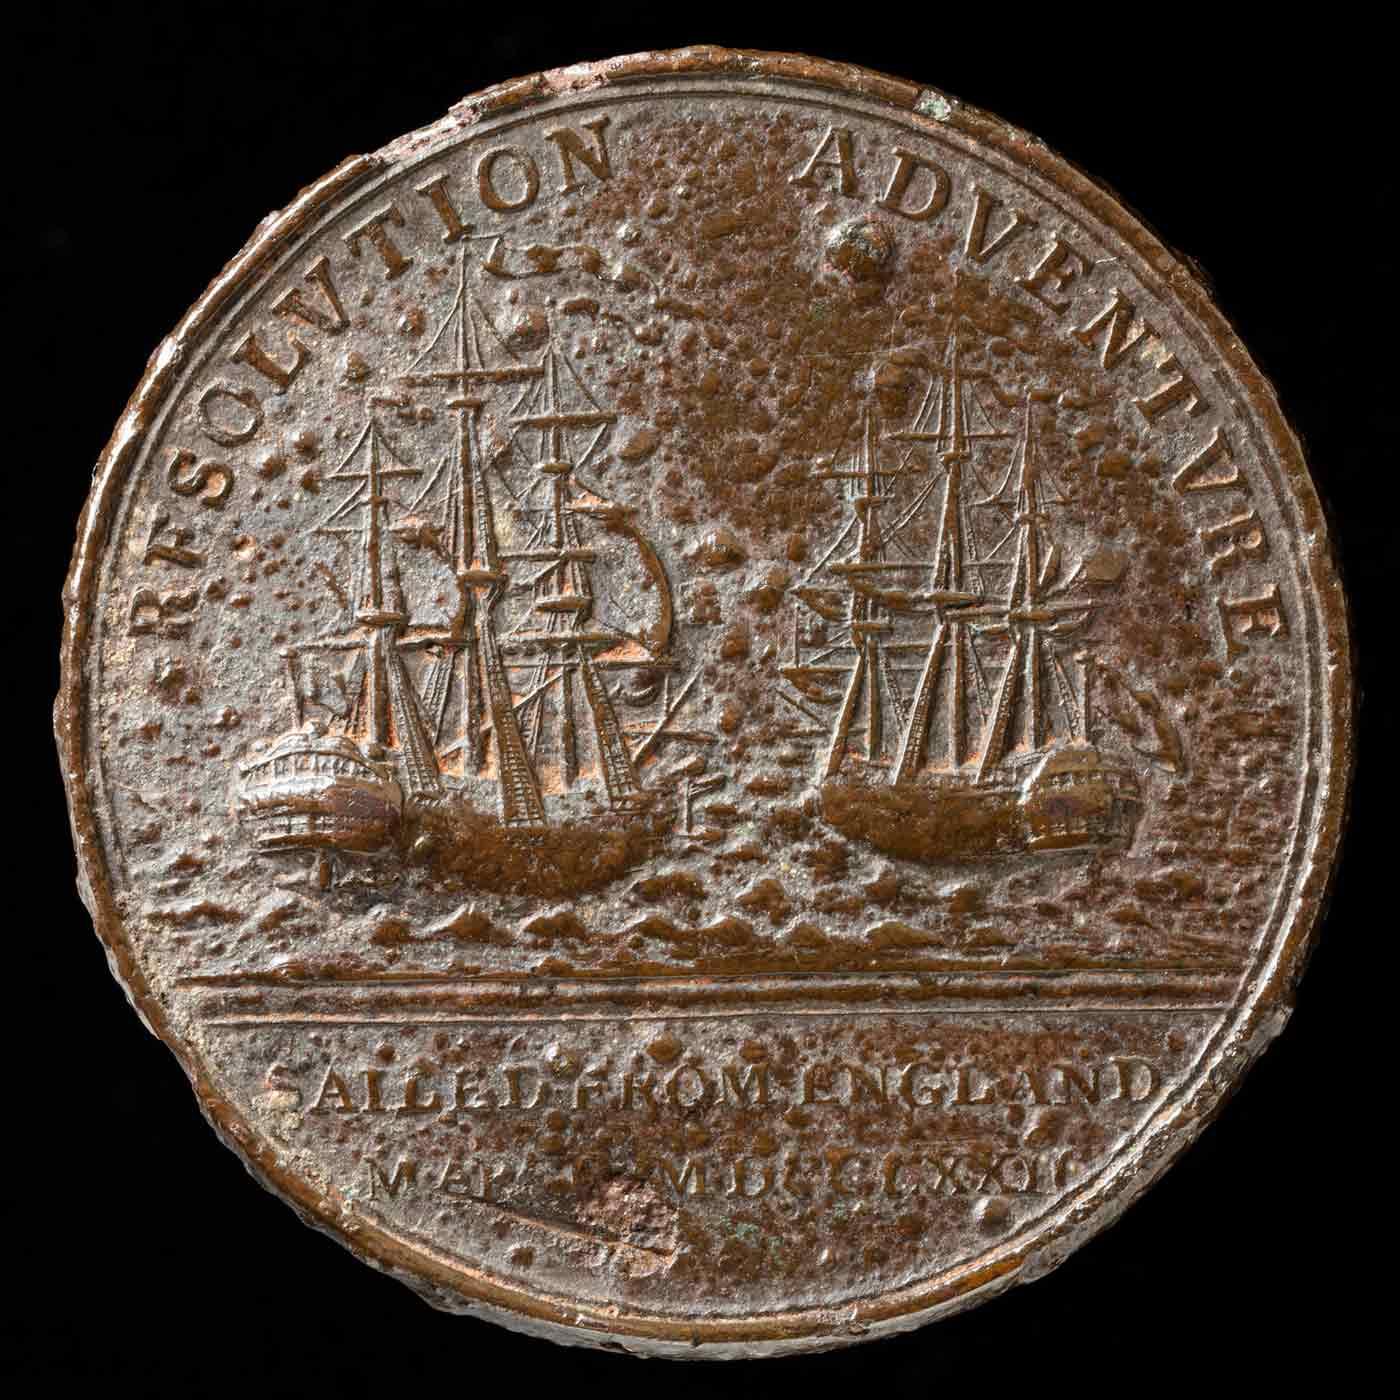 A medal featuring two ships from Cook's second voyage, showing the sloops at sea, with the text 'RESOLUTION ADVENTURE' above. Further details below the ships read 'SAILED FROM ENGLAND / MARCH MDCCLXXII'.  - click to view larger image